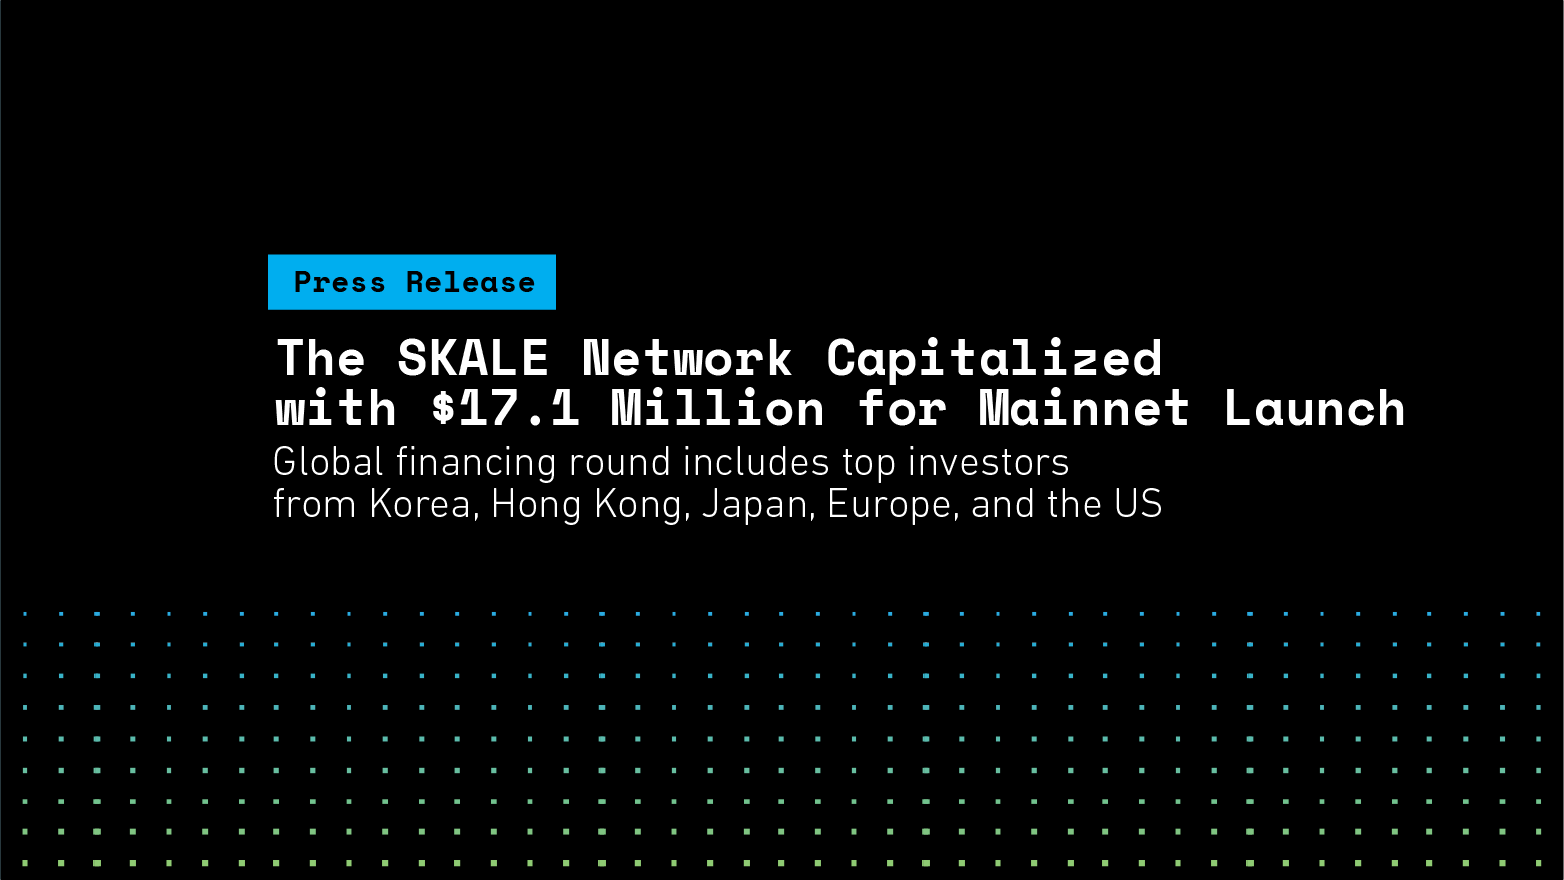 The SKALE Network Capitalized with $17.1 Million for Mainnet Launch